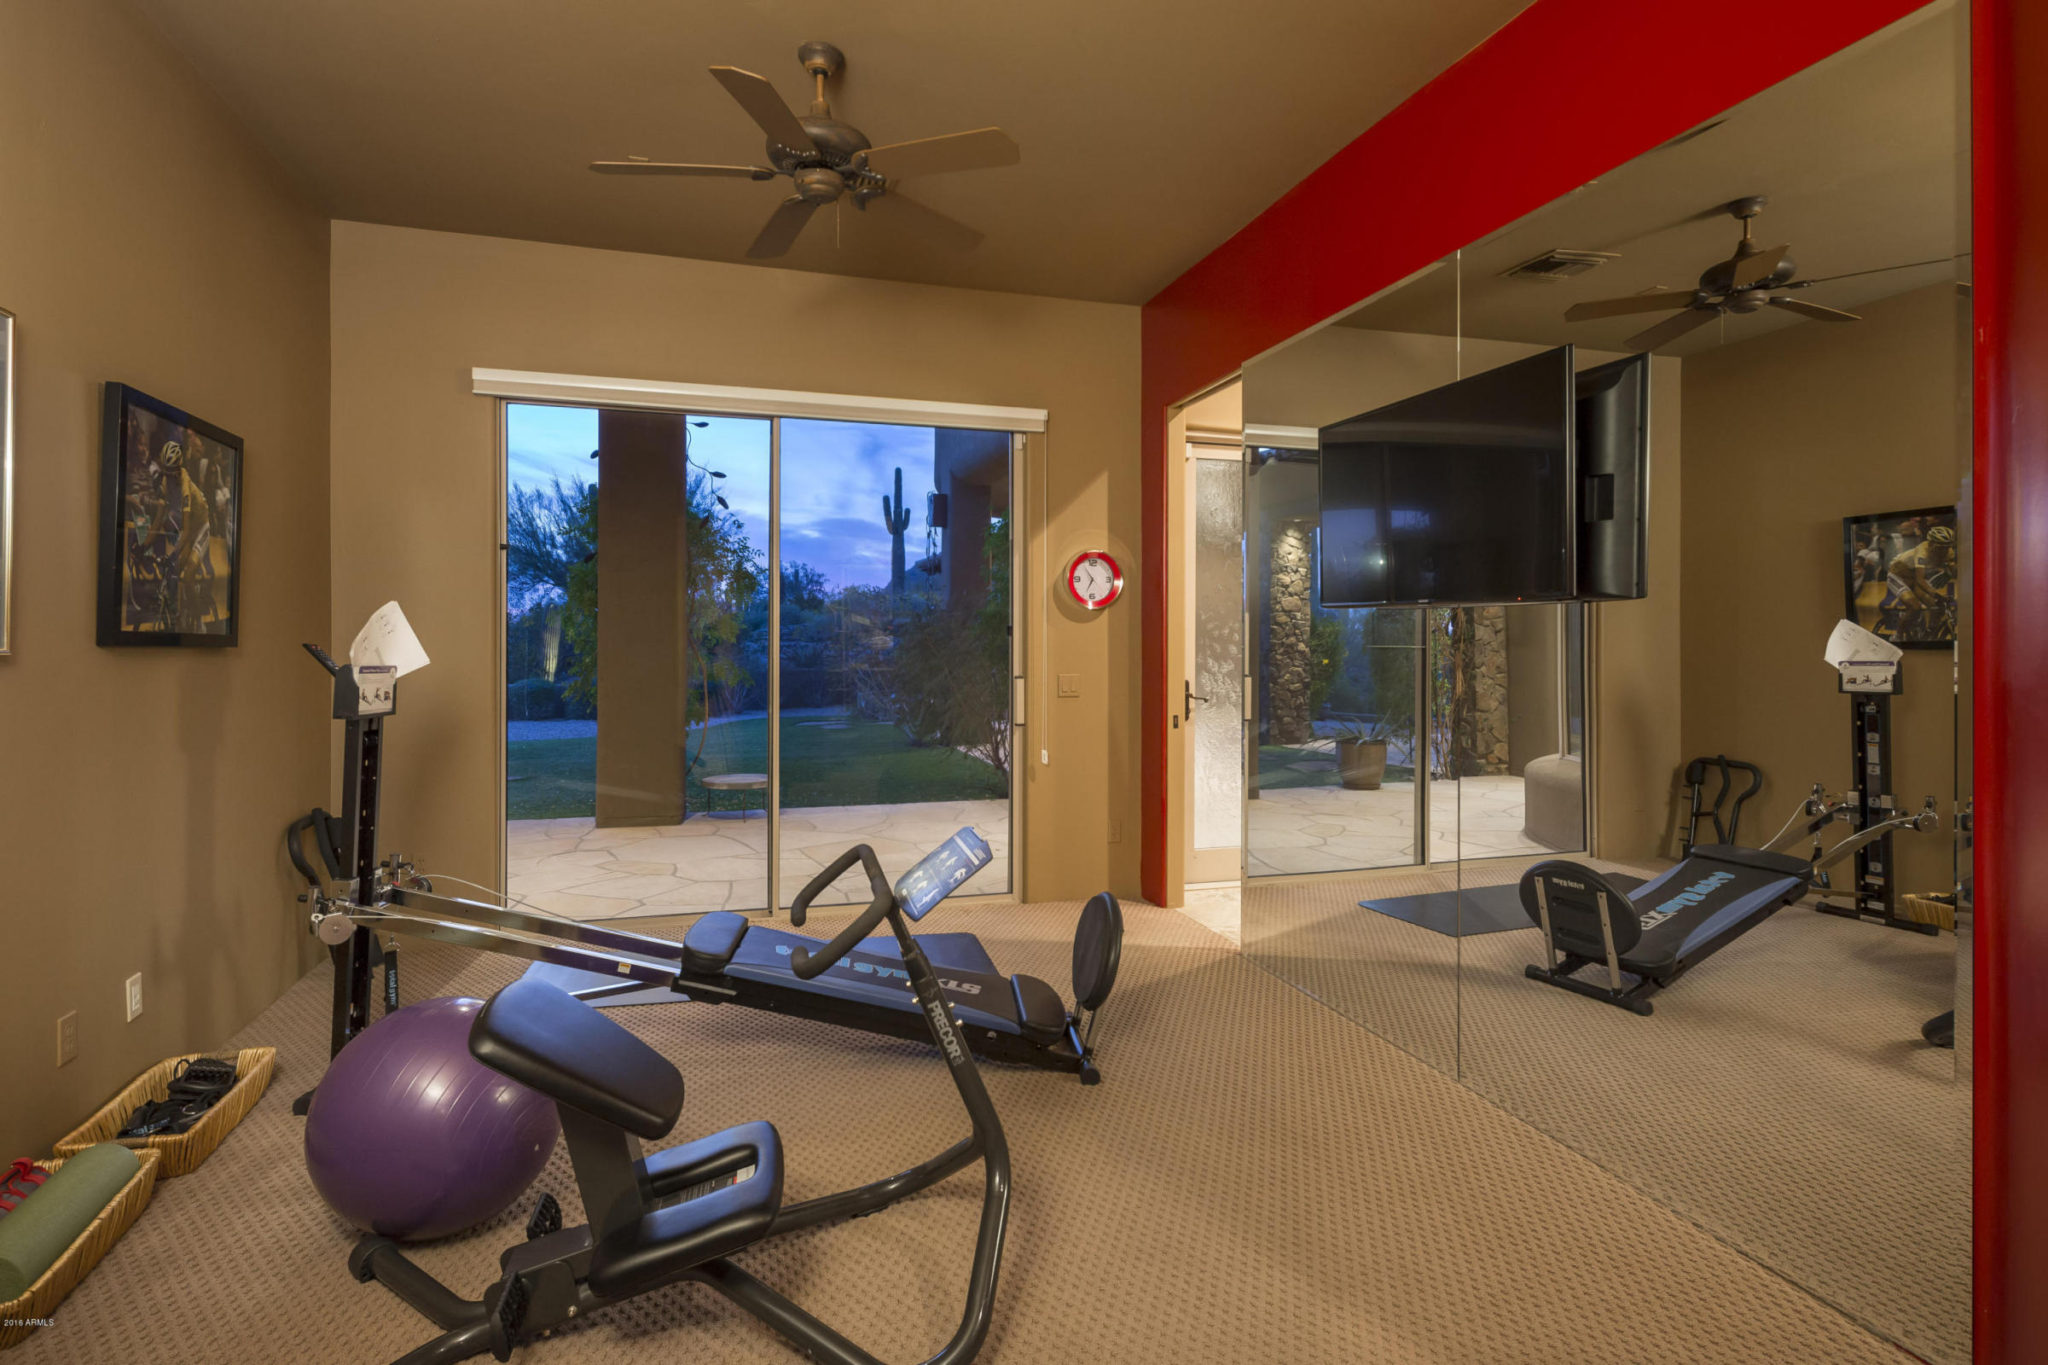 Beveled edge gym mirror with TV